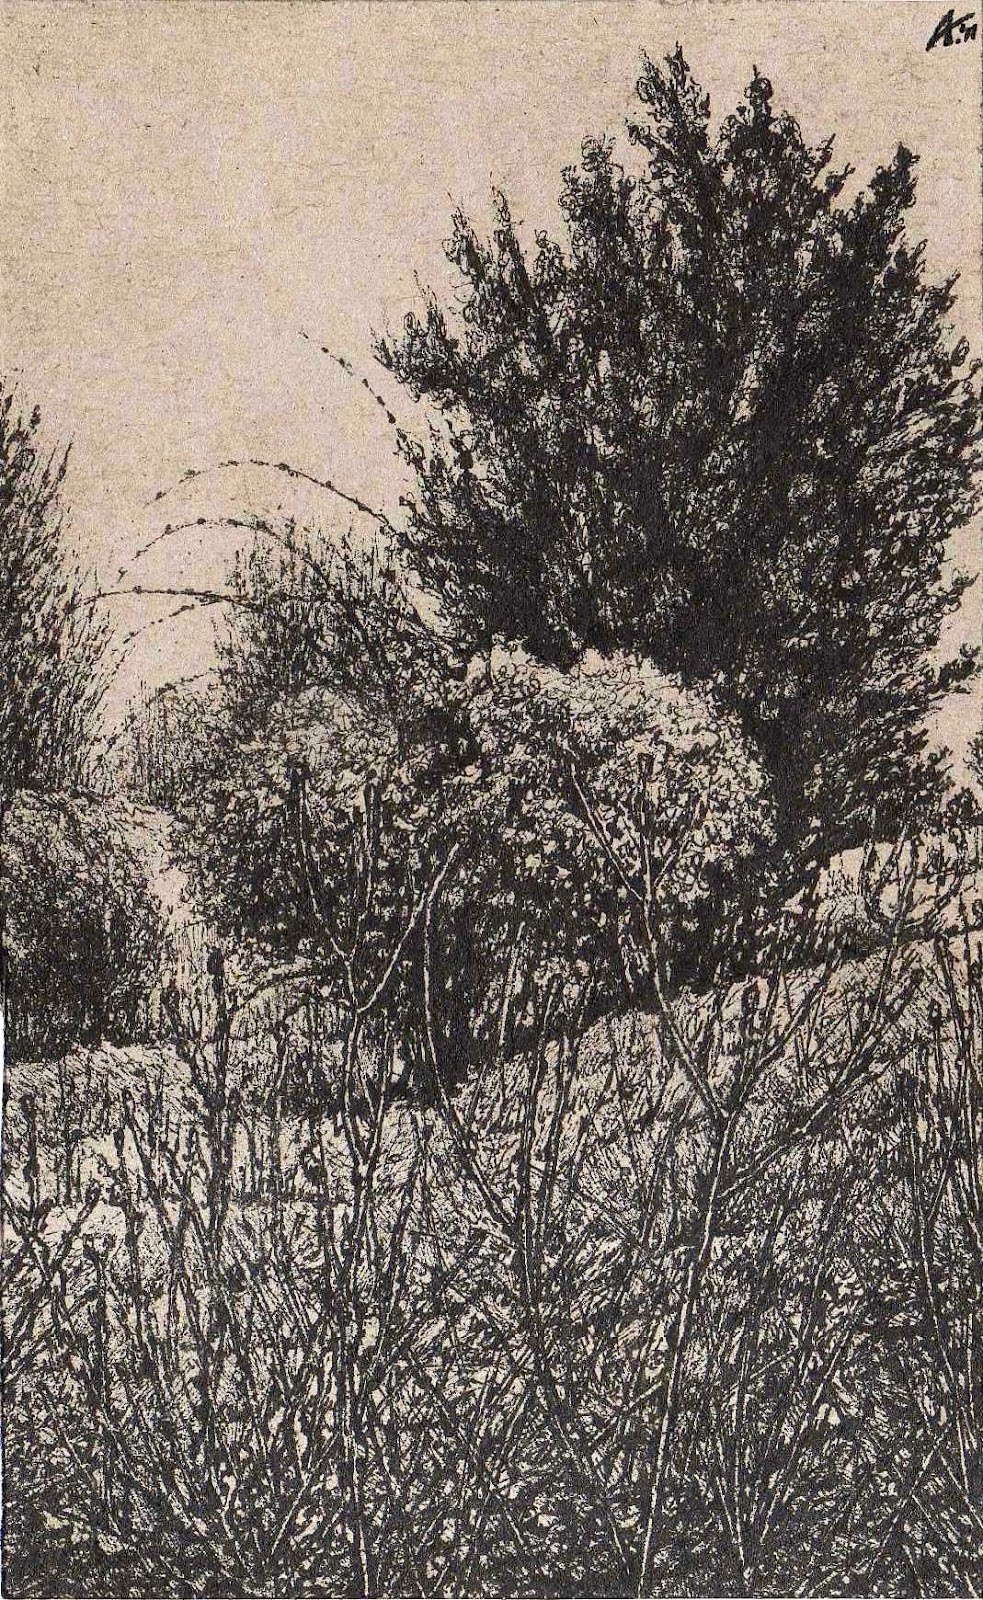 THE LATOR CREEK AREA IN THE LOWLANDS I - Miniatura, MMXII - Ink on carton - 5,51 X 3,54 in.jpg